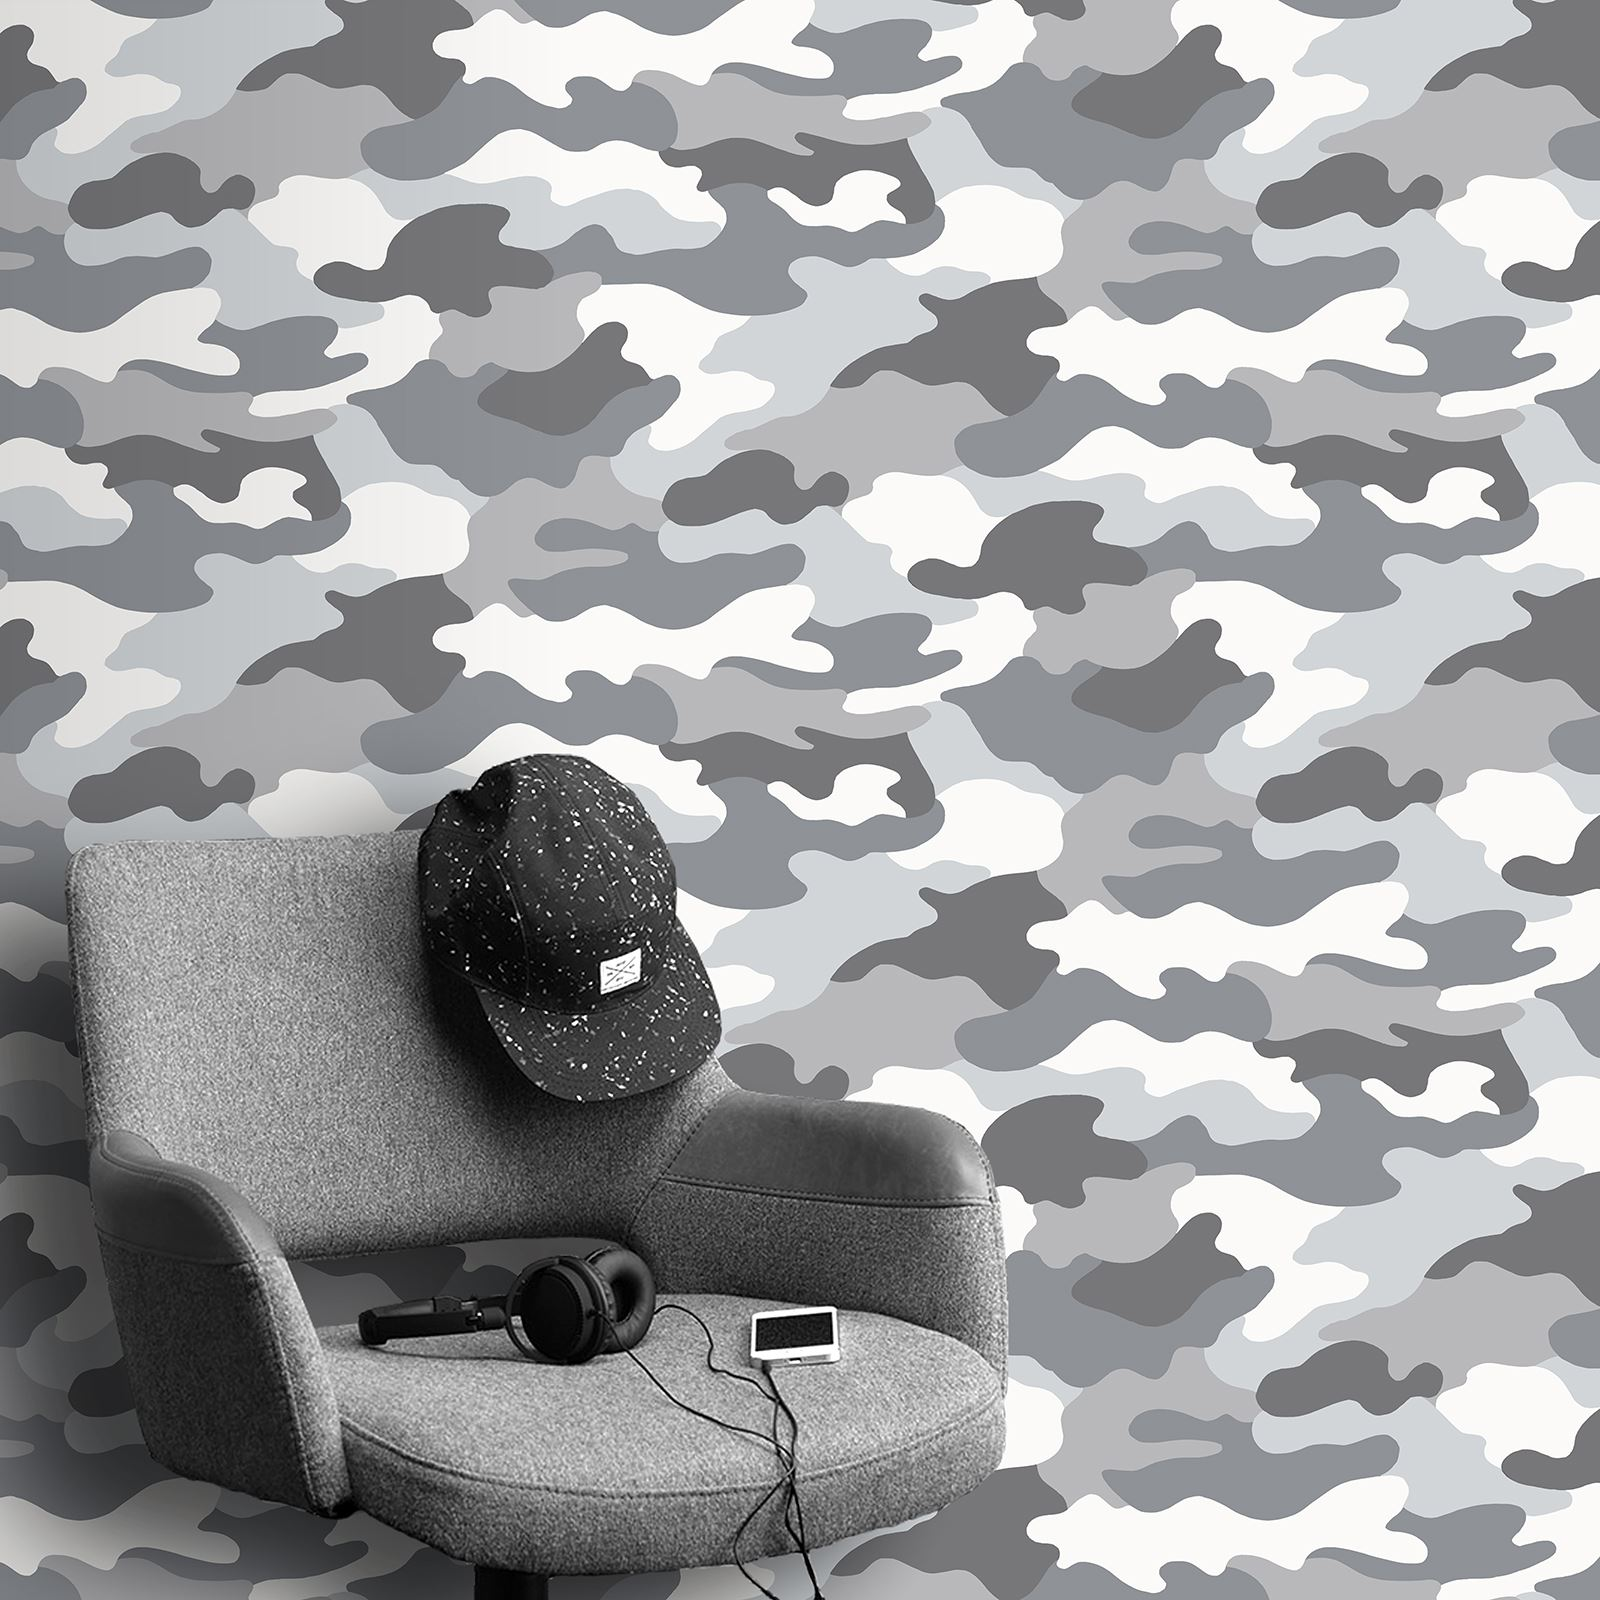 camouflage wallpaper 10m khaki green grey black army soldier